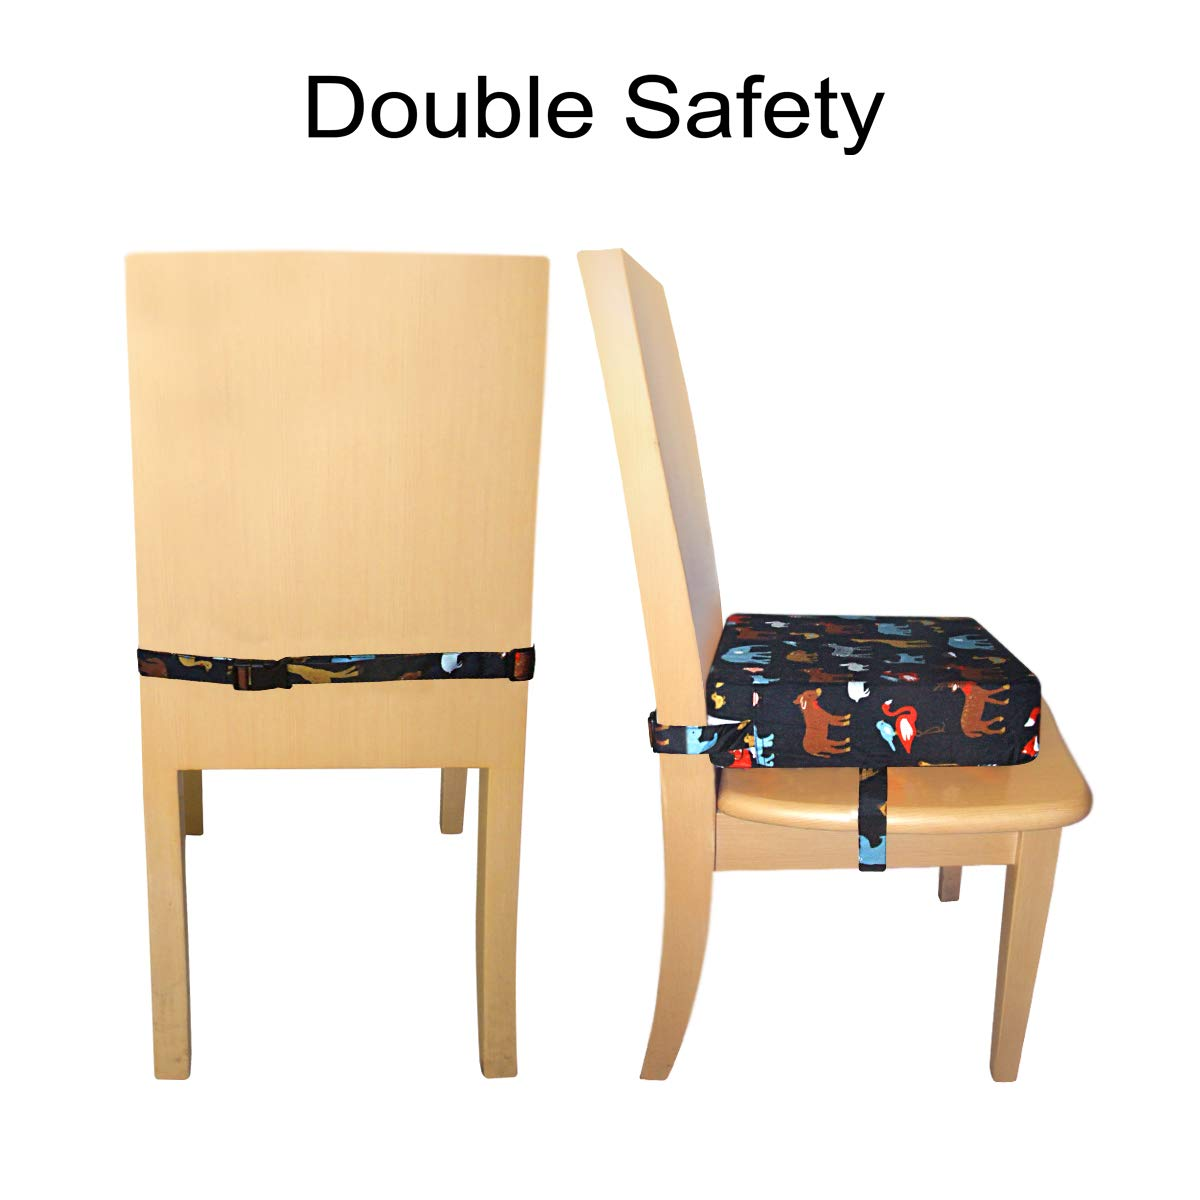 Black Sunmall Dining Chair Heightening Cushion Portable Dismountable Adjustable Highchair Booster for Baby Toddler Kids Infant Washable Thick Chair Seat Pad Mat